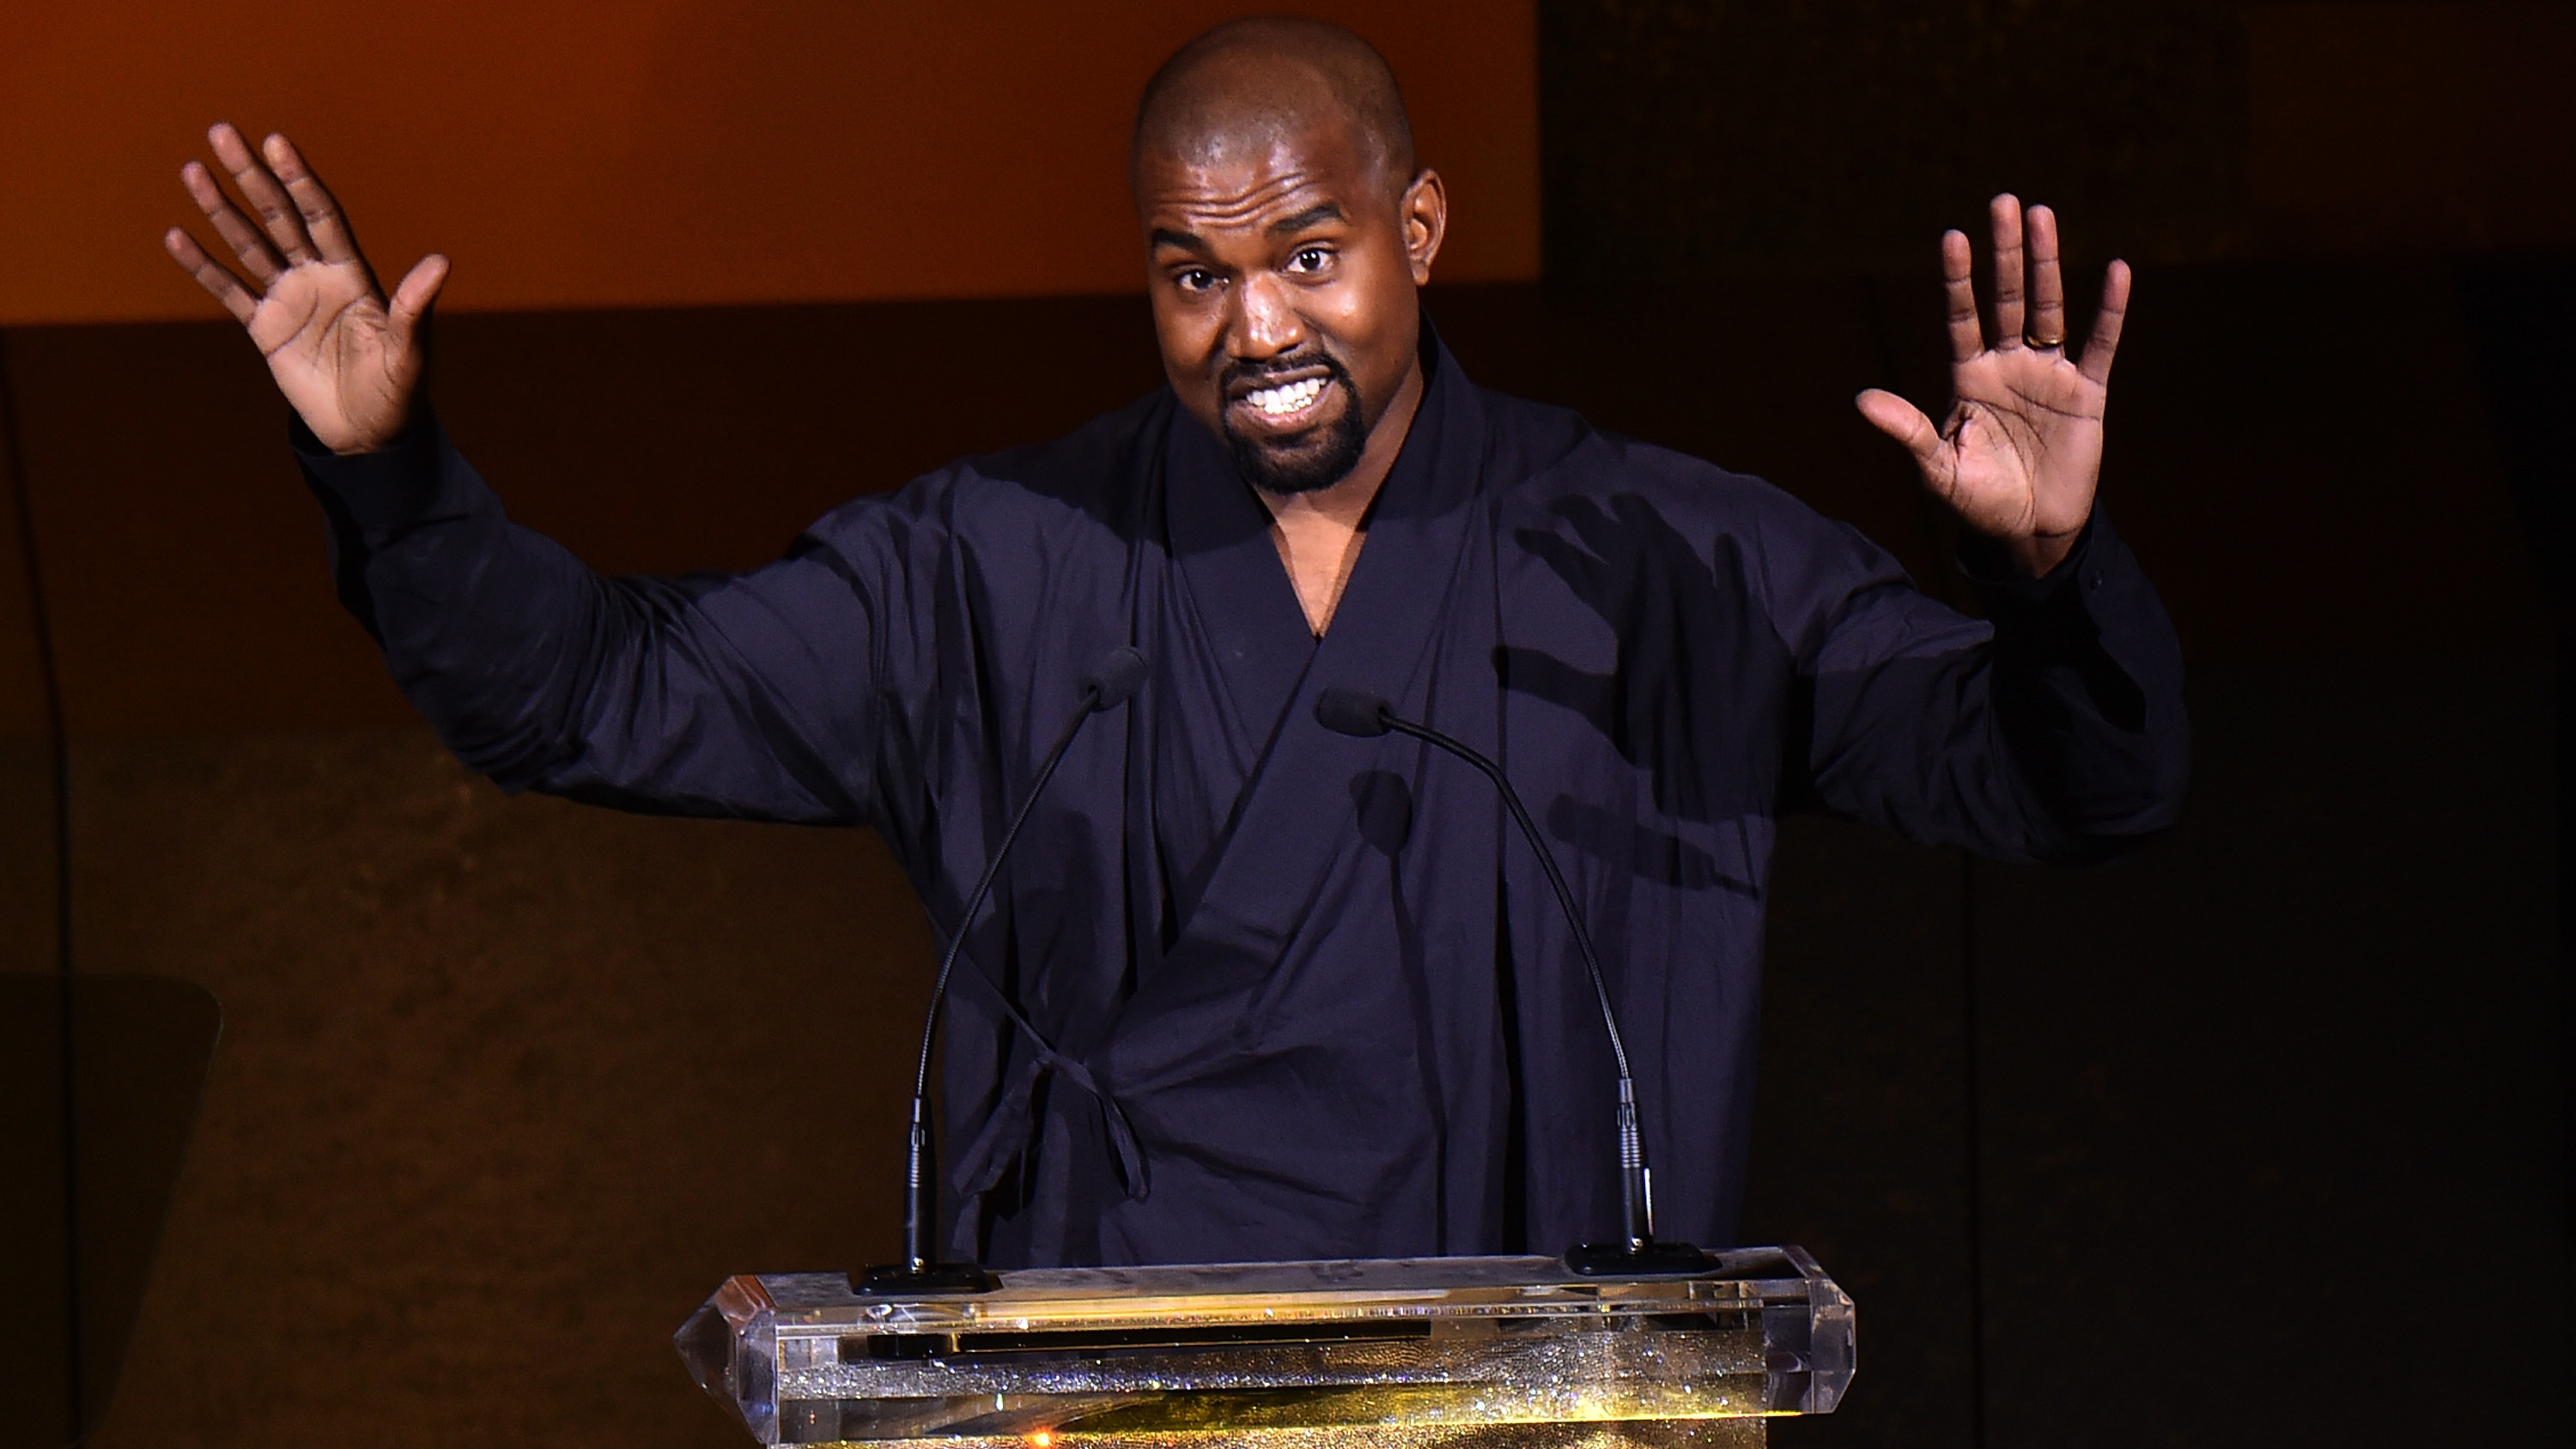 This is Why Kanye West Claims His 2020 Run Is Not a Stunt